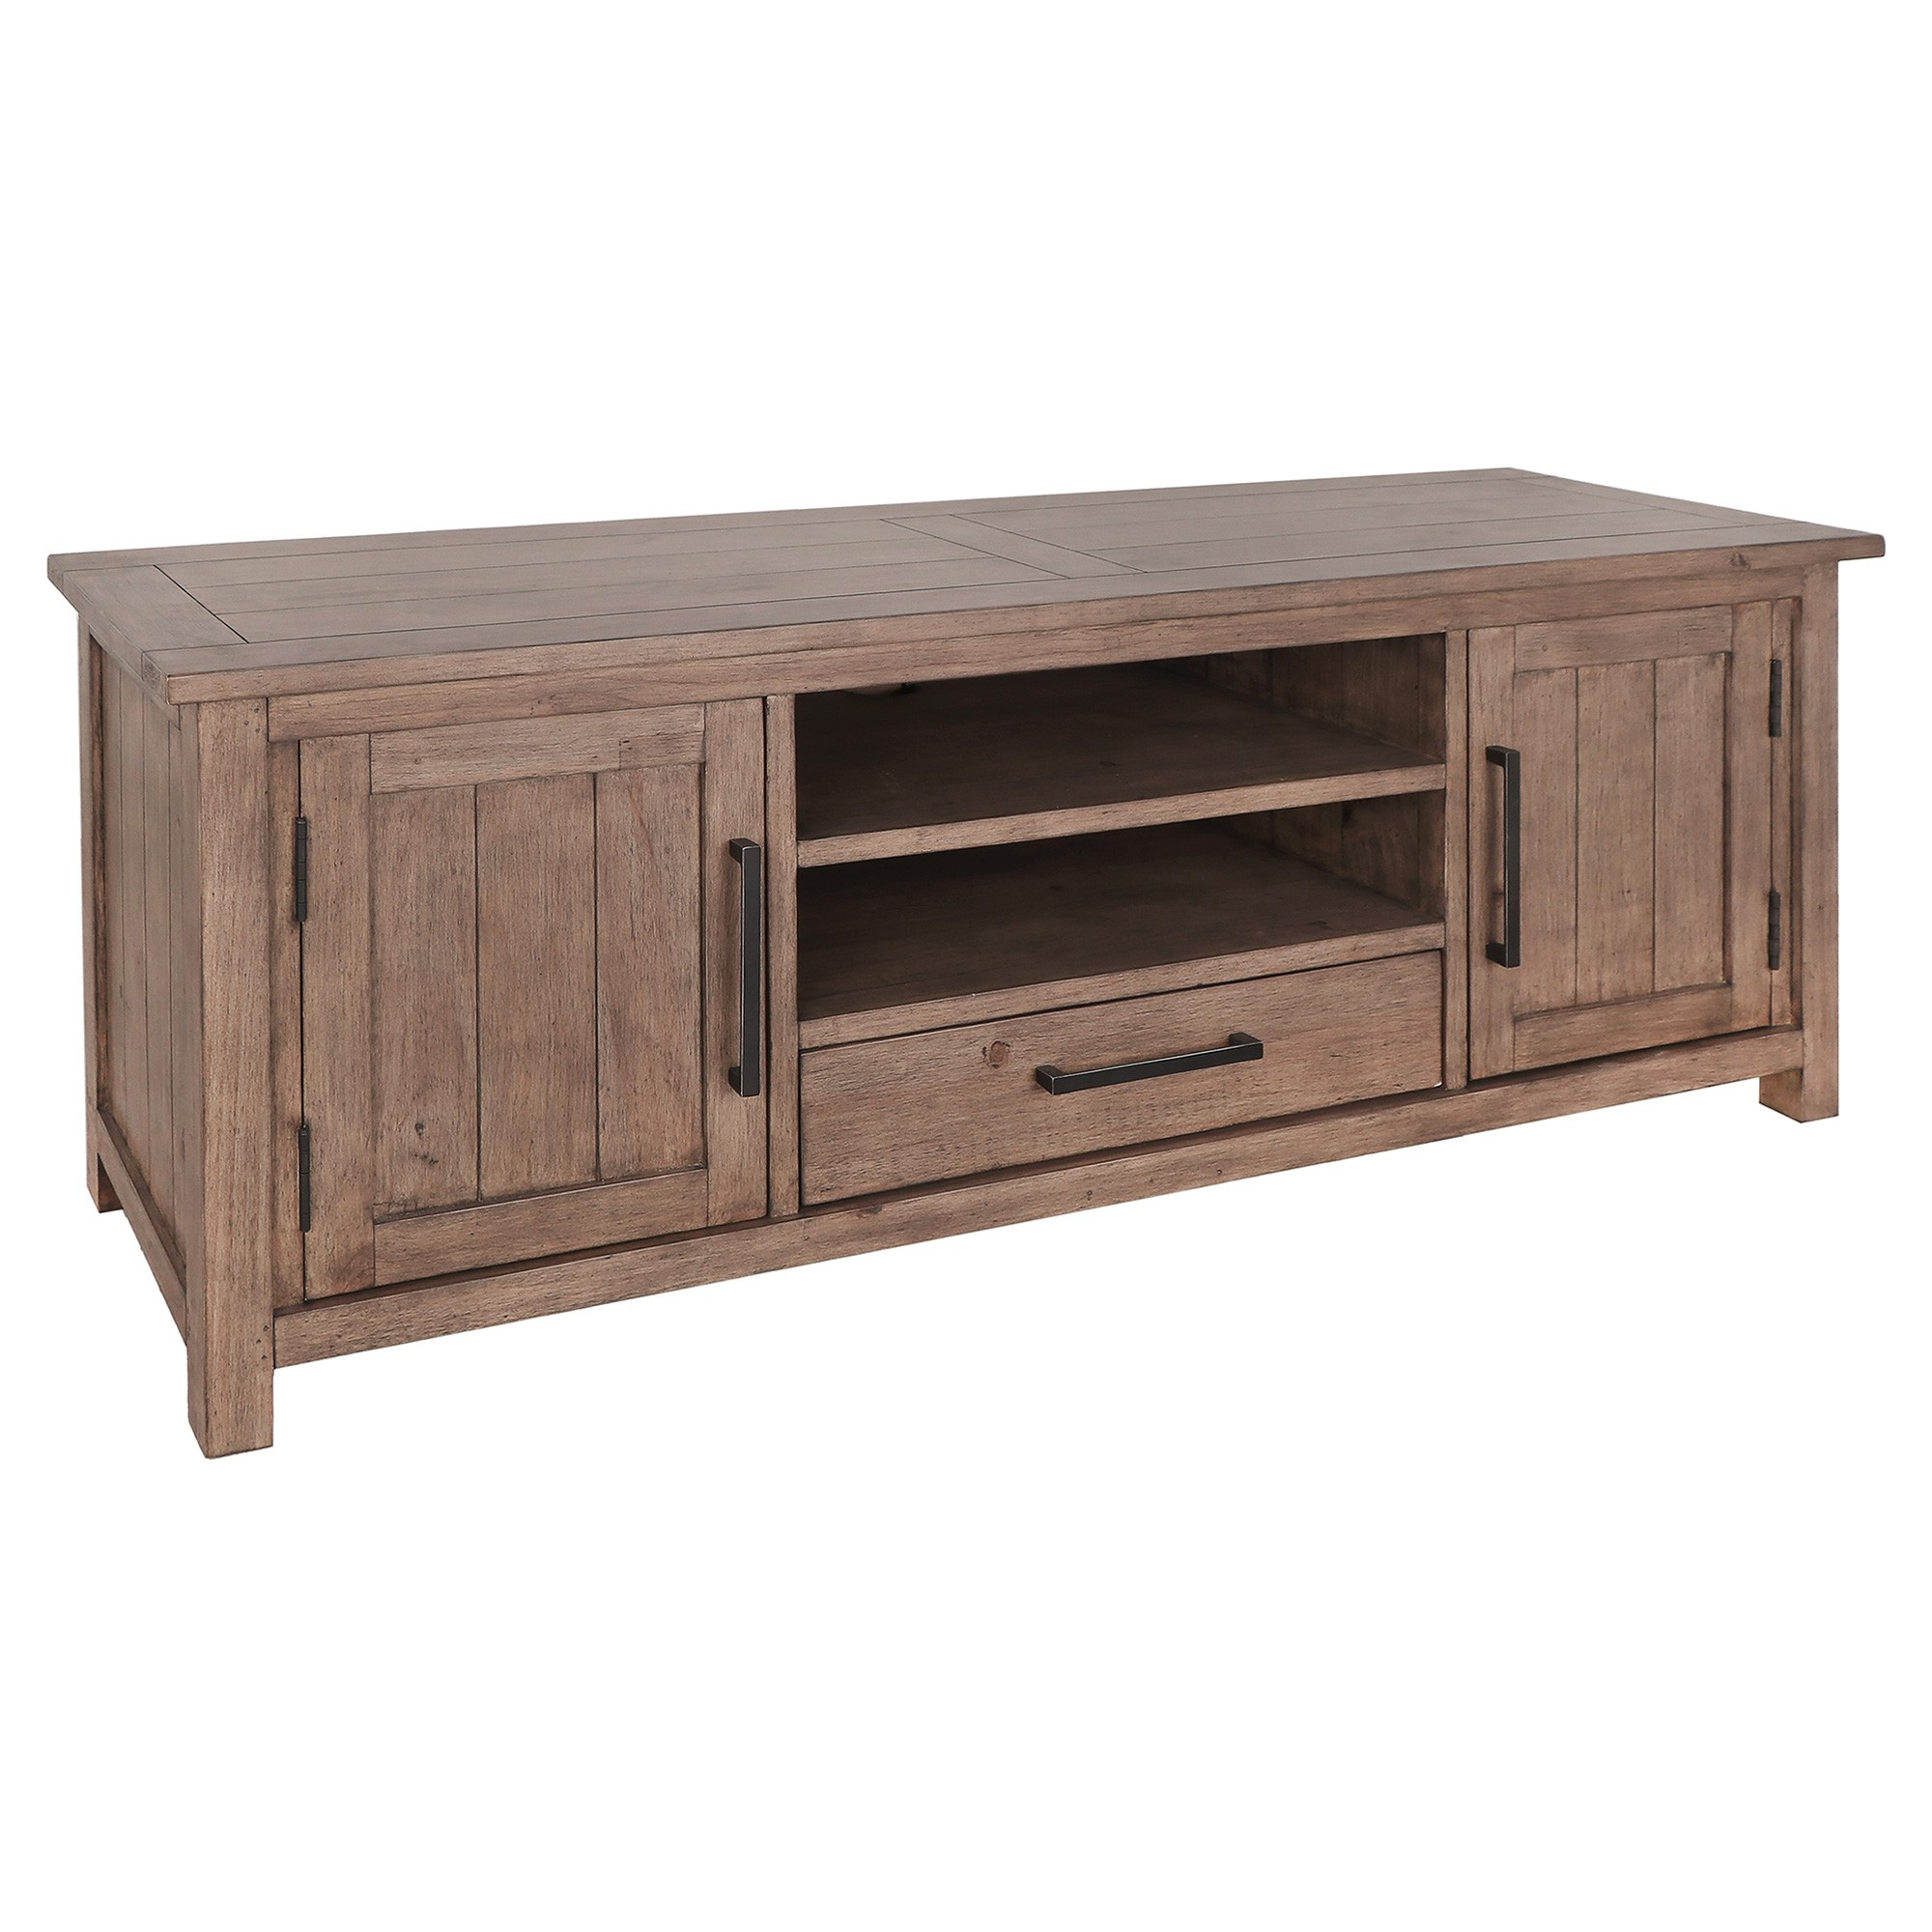 Griffin Pine Timber 2 Door 1 Drawer TV Unit, 160cm